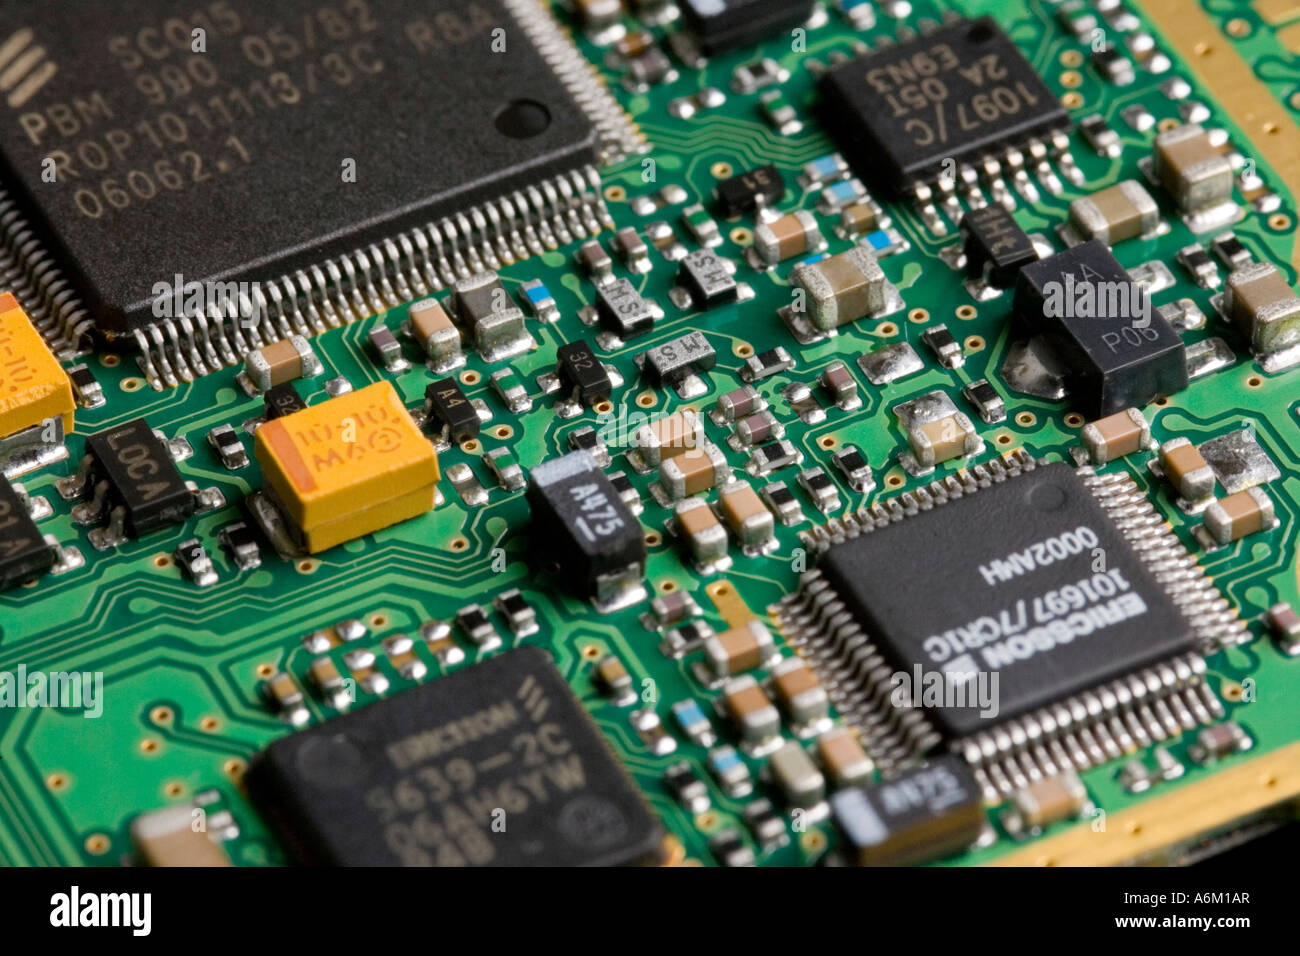 printed circuits components for a jit Welcome to the premier industrial source for printed circuit boards (pcb) in colorado these companies offer a comprehensive range of printed circuit boards (pcb), as well as a variety of related products and services.